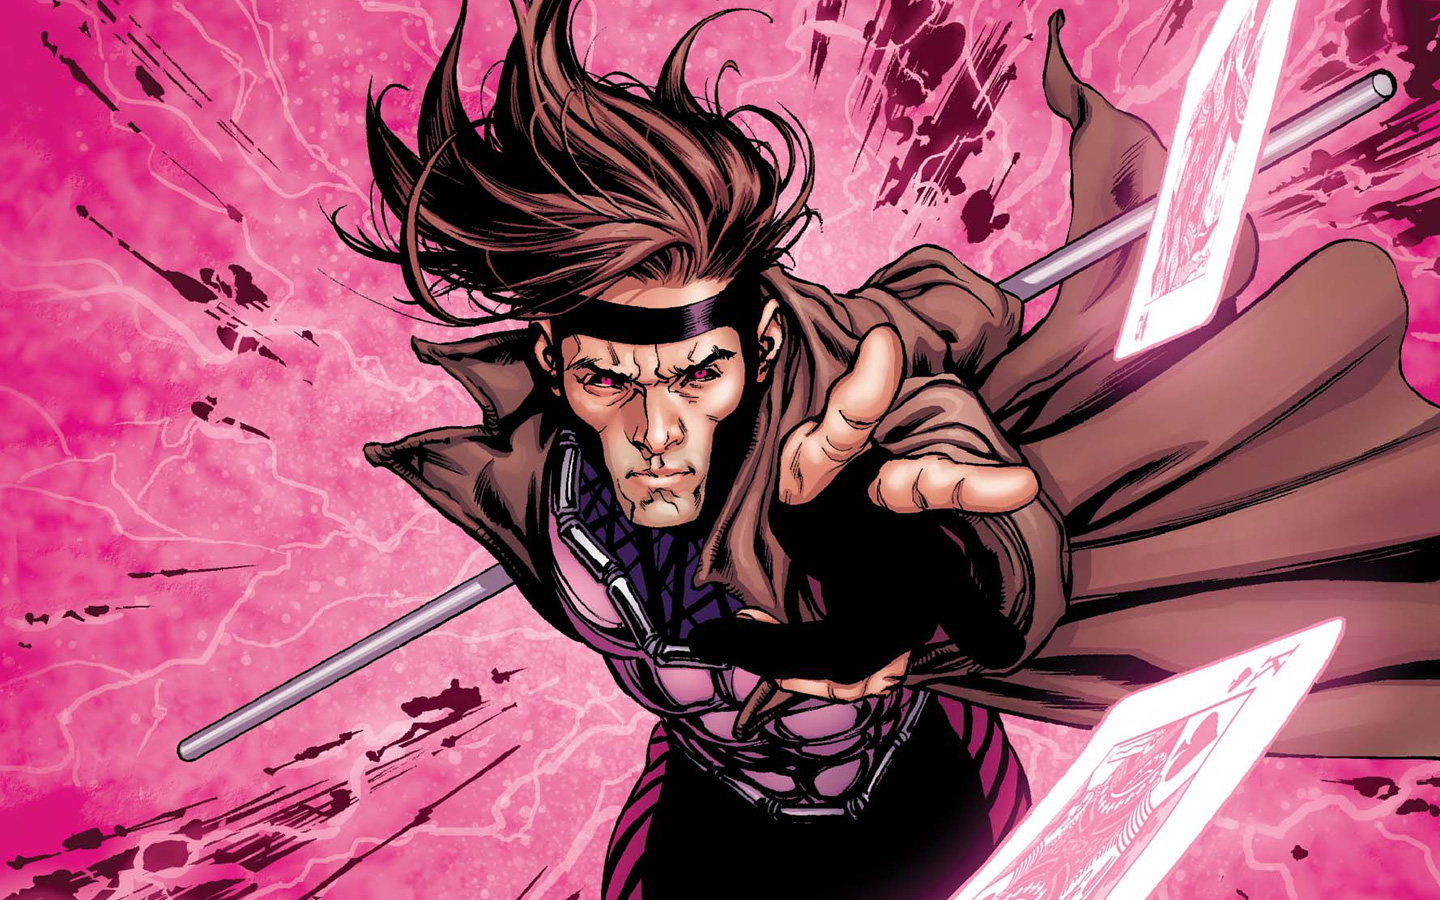 comic-comics-20020-is-a-gambit-standalone-x-men-movie-a-bad-idea